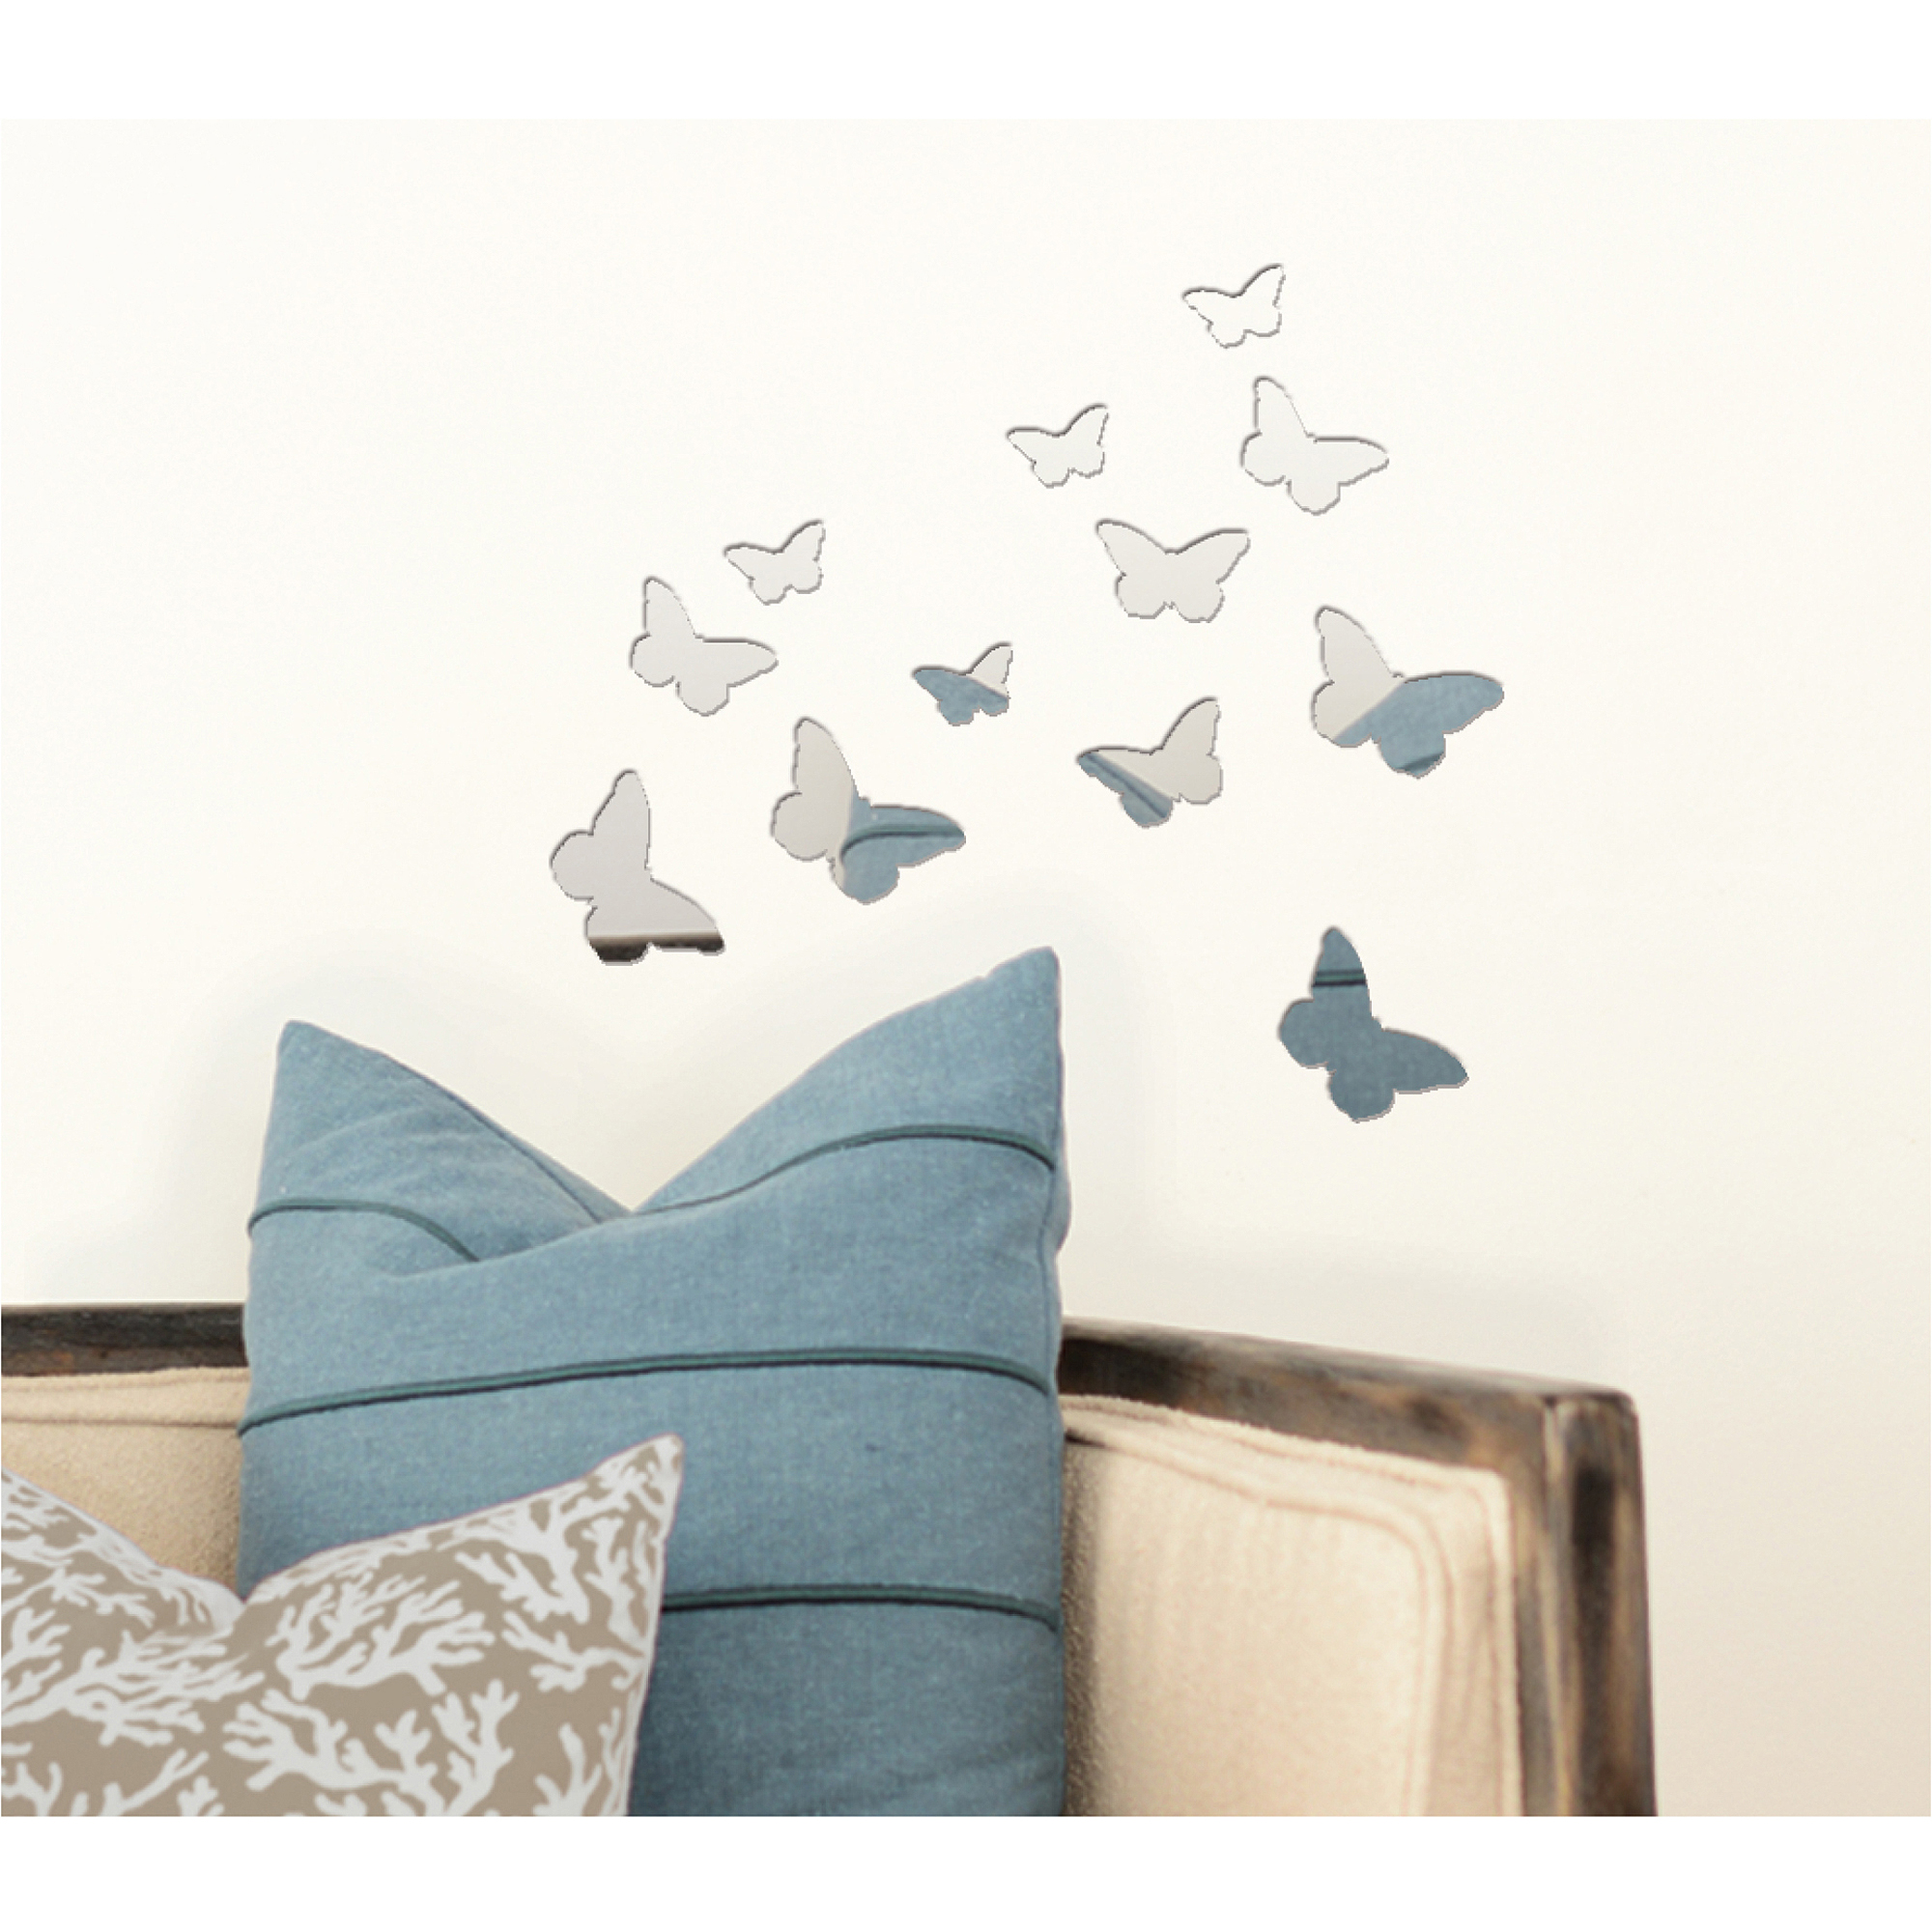 Blue Moon Studio 12 pc Peel and Stick Self-Adhesive Silver Butterfly Wall Mirror Decals